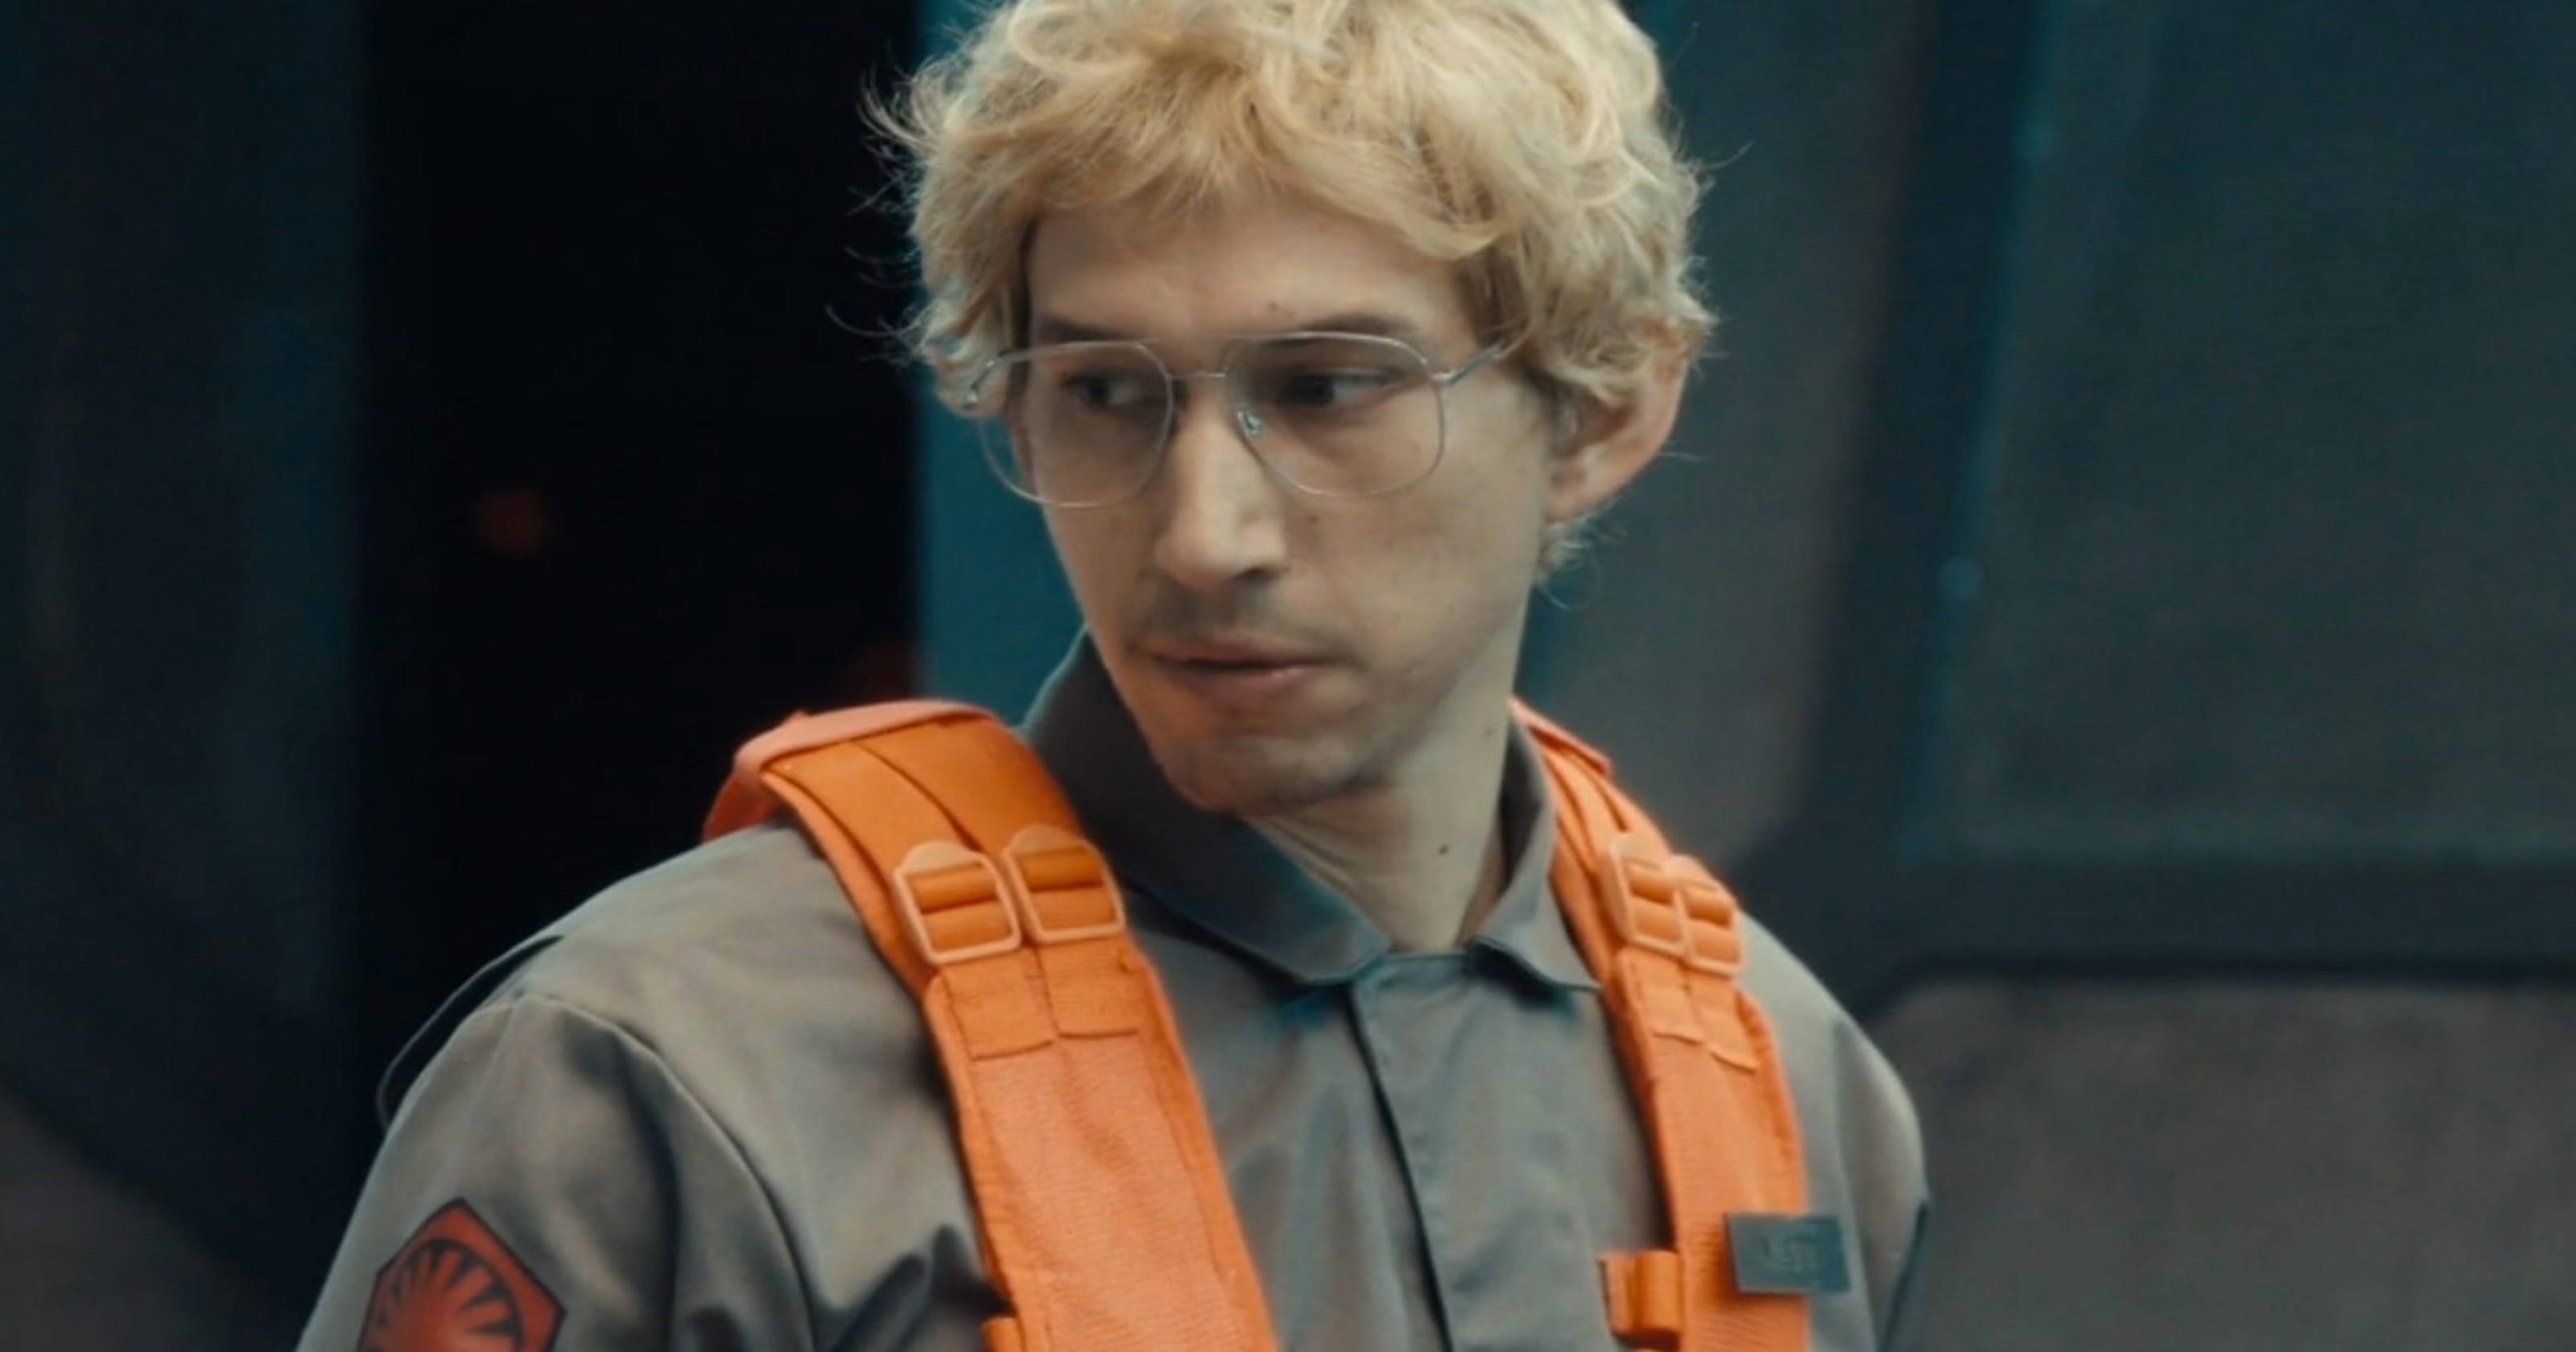 Adam Driver Snl Highlight Kylo Ren Goes On Undercover Boss